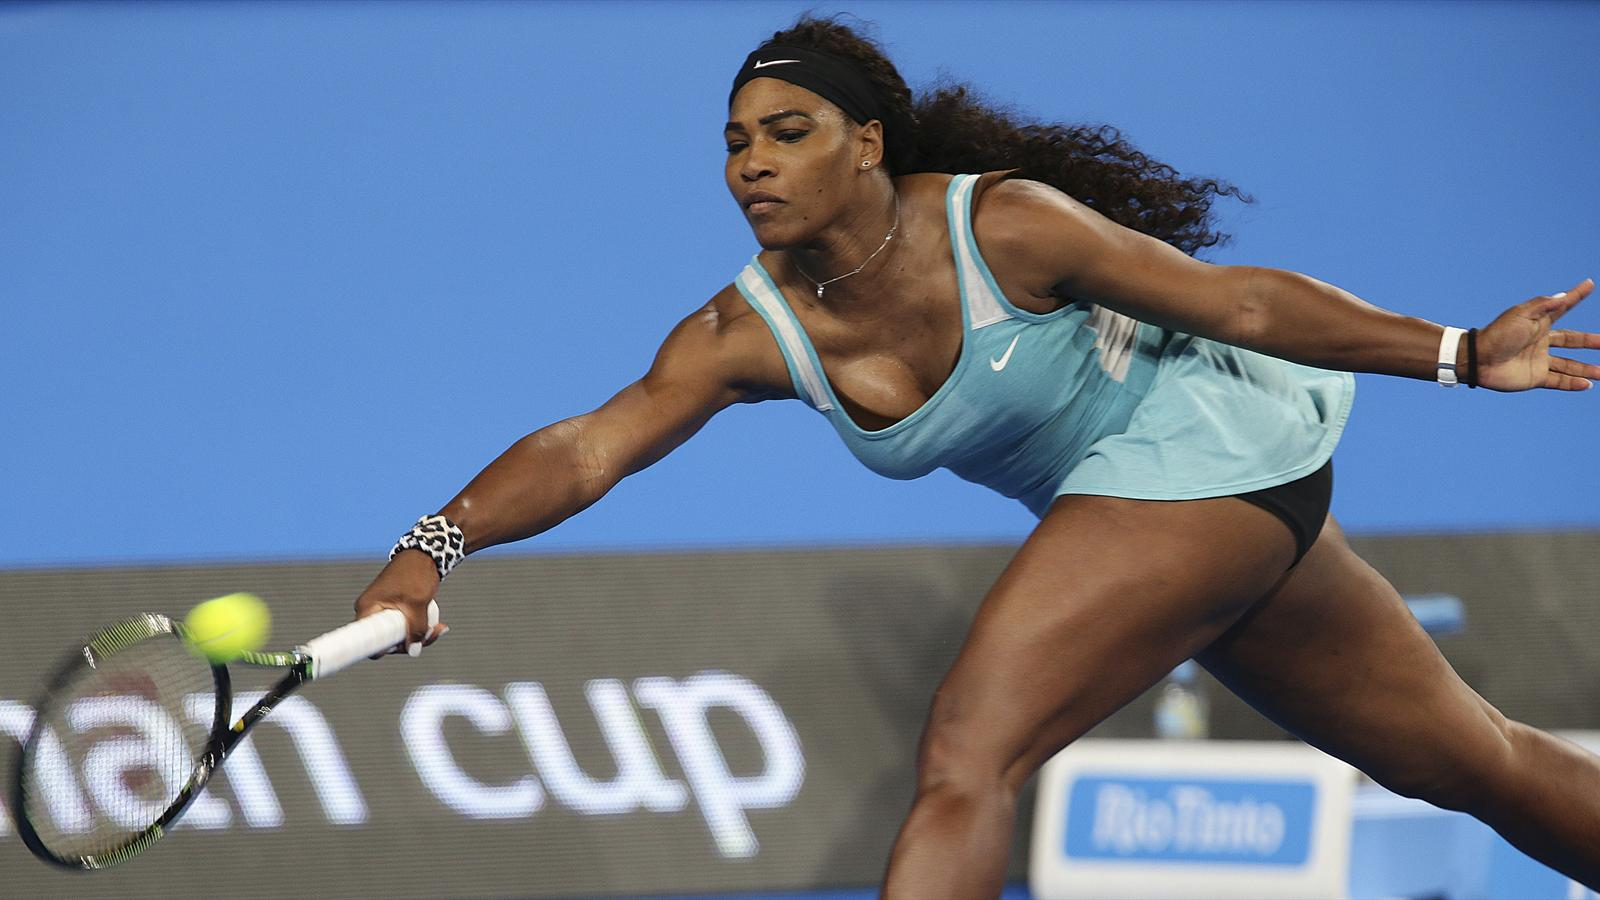 Serena Williams vs Sabine Lisicki